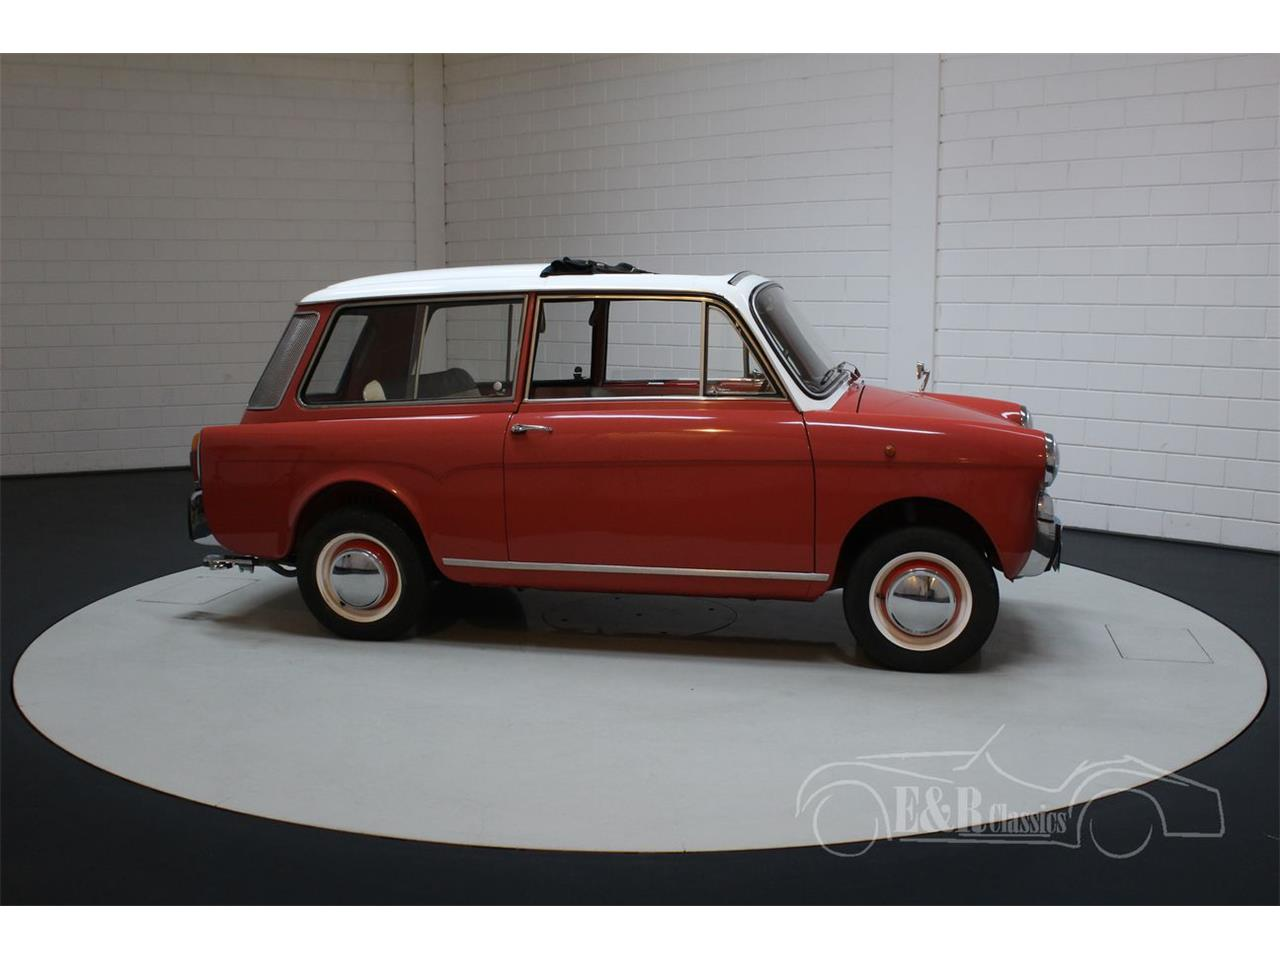 1961 Autobianchi Bianchina Panoramica (CC-1416195) for sale in Waalwijk, Noord-Brabant